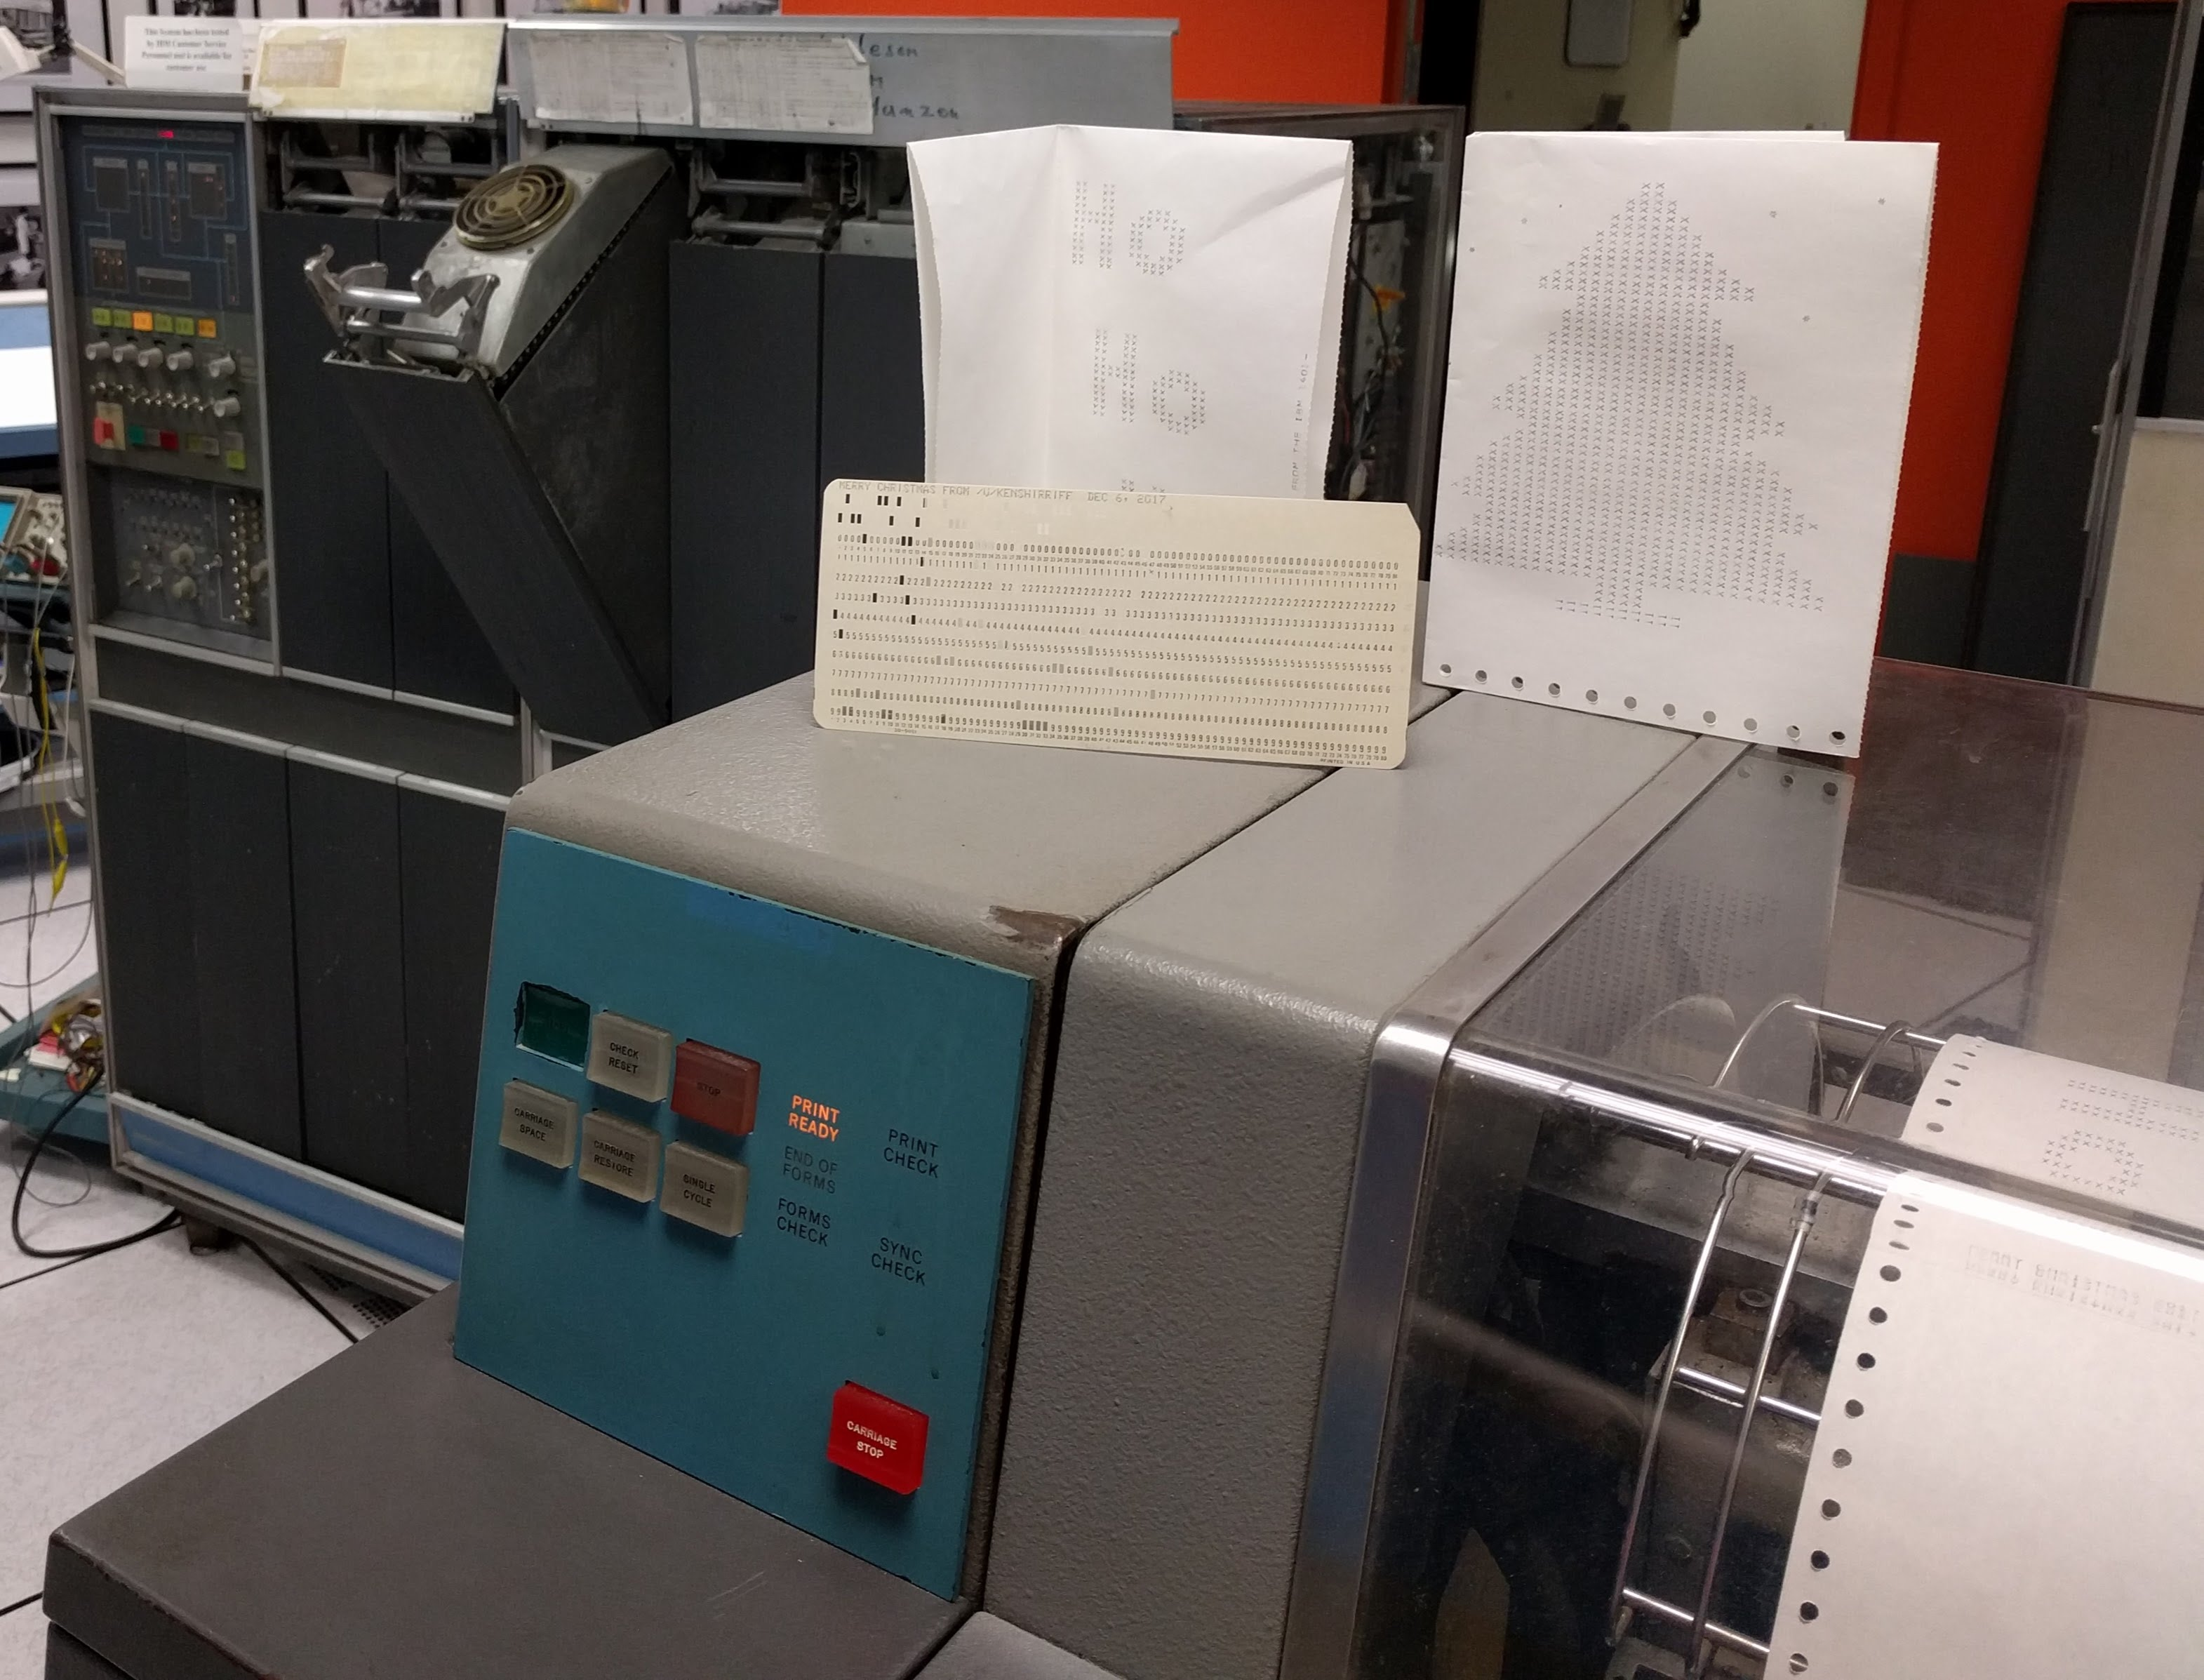 Creating A Christmas Card On A Vintage Ibm 1401 Mainframe